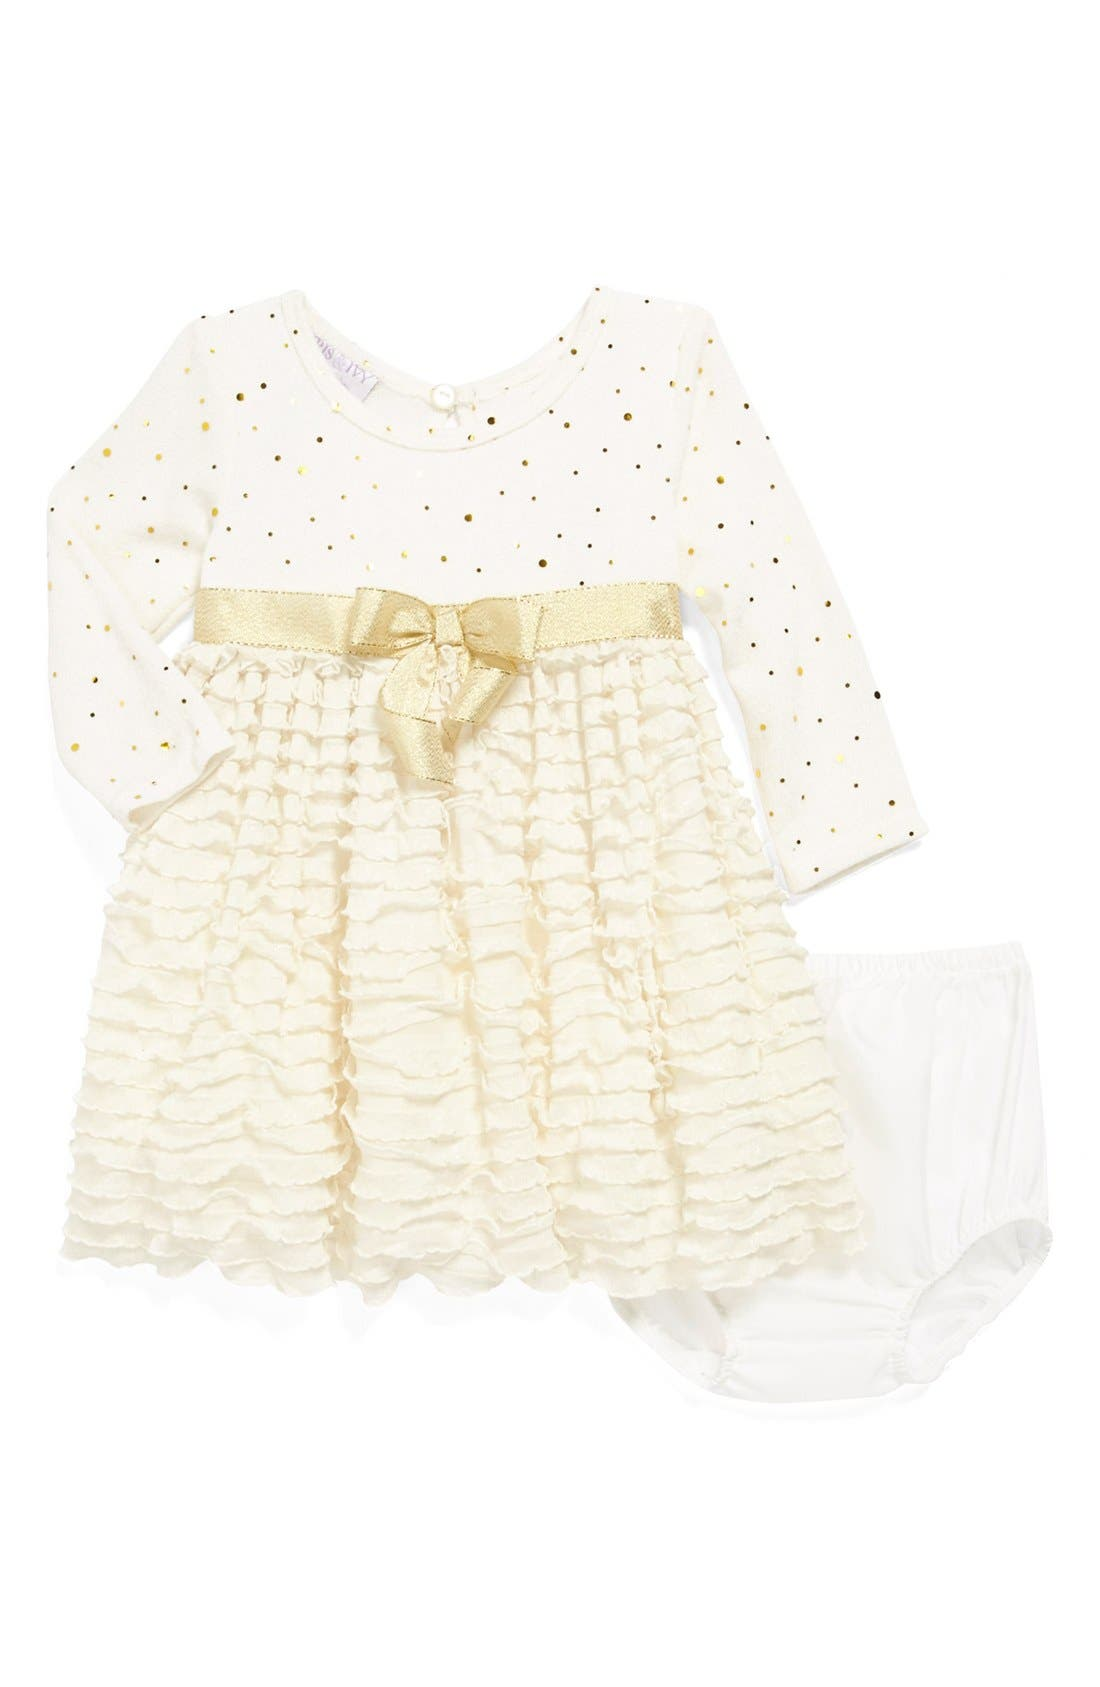 Alternate Image 1 Selected - Iris & Ivy Glitter Knit Ruffle Skirt Dress (Baby Girls)